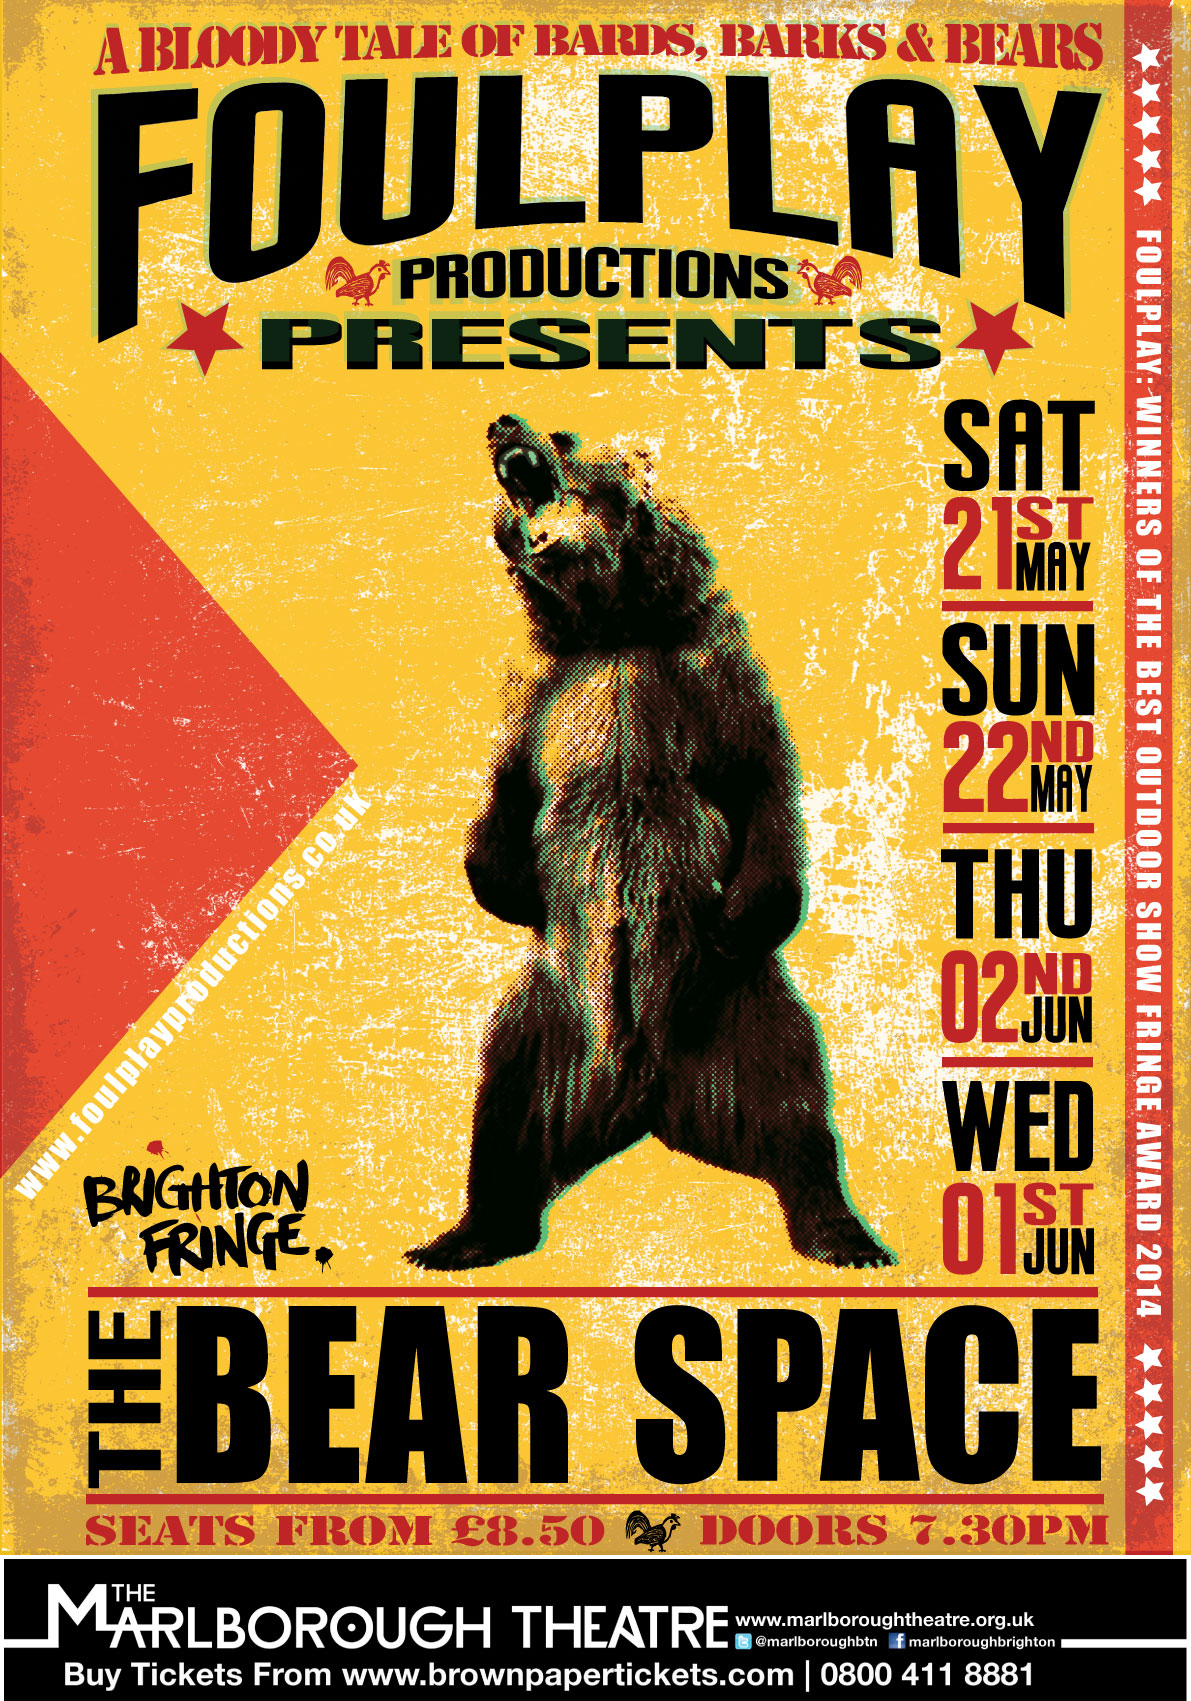 ulysses black - foulplays Bear Space Poster